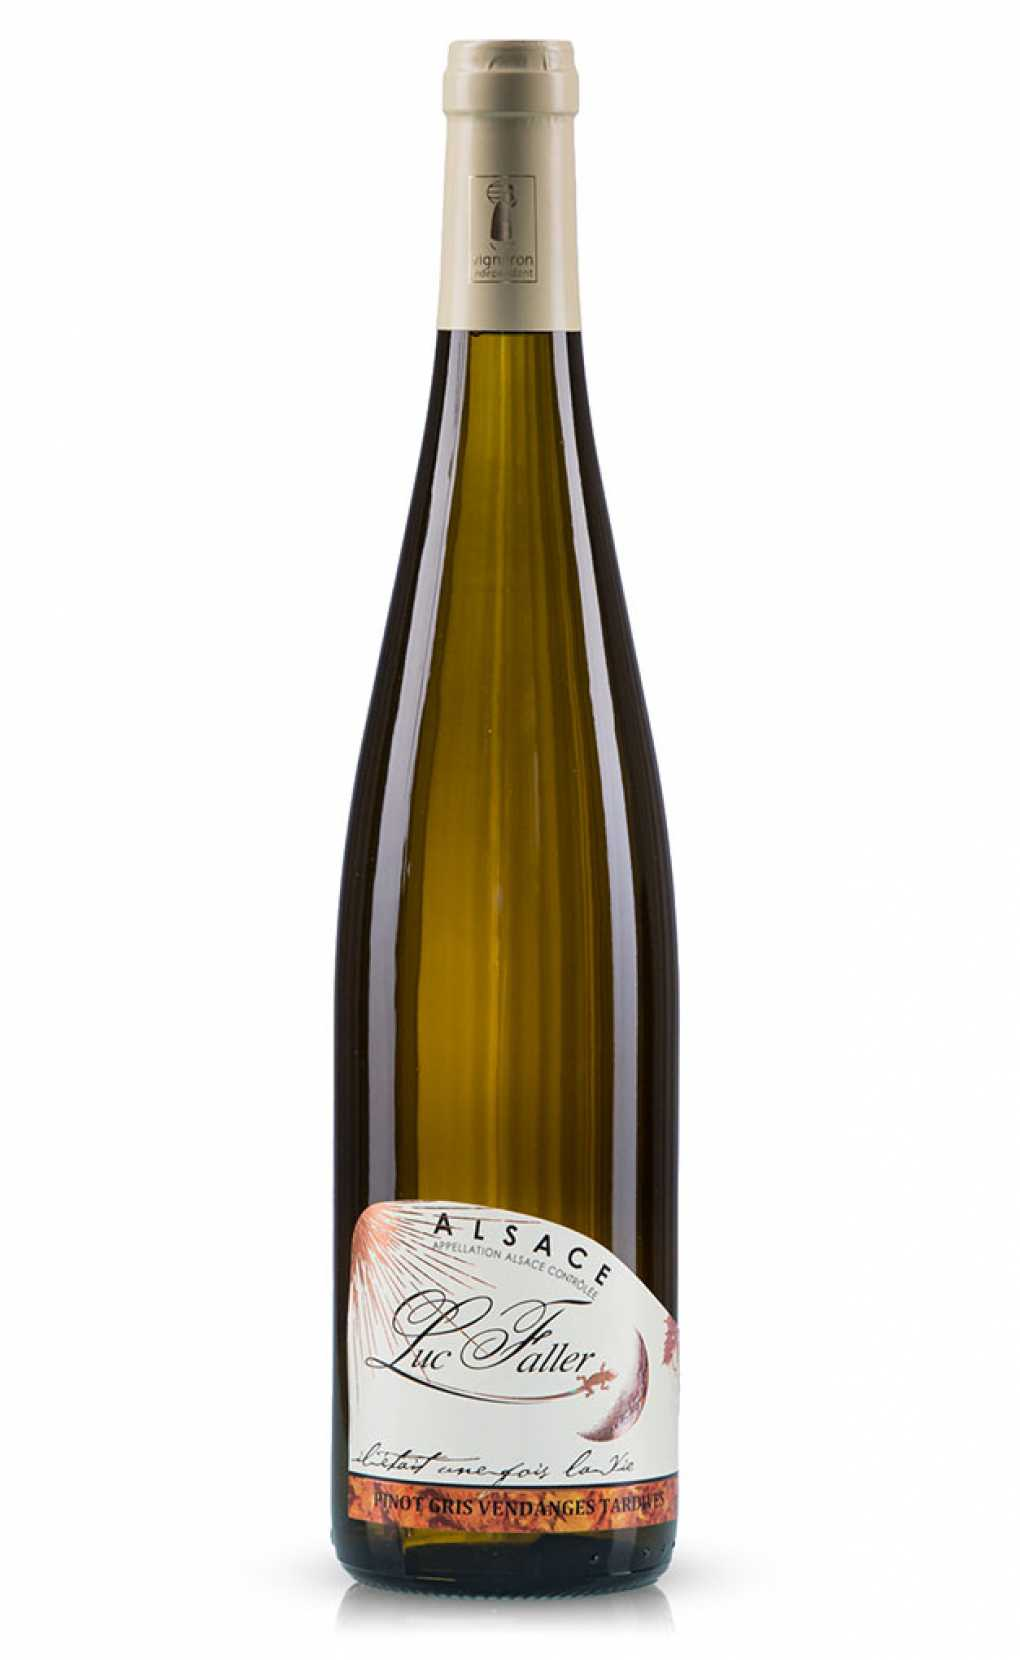 pinot-gris-vendanges-tardives-4